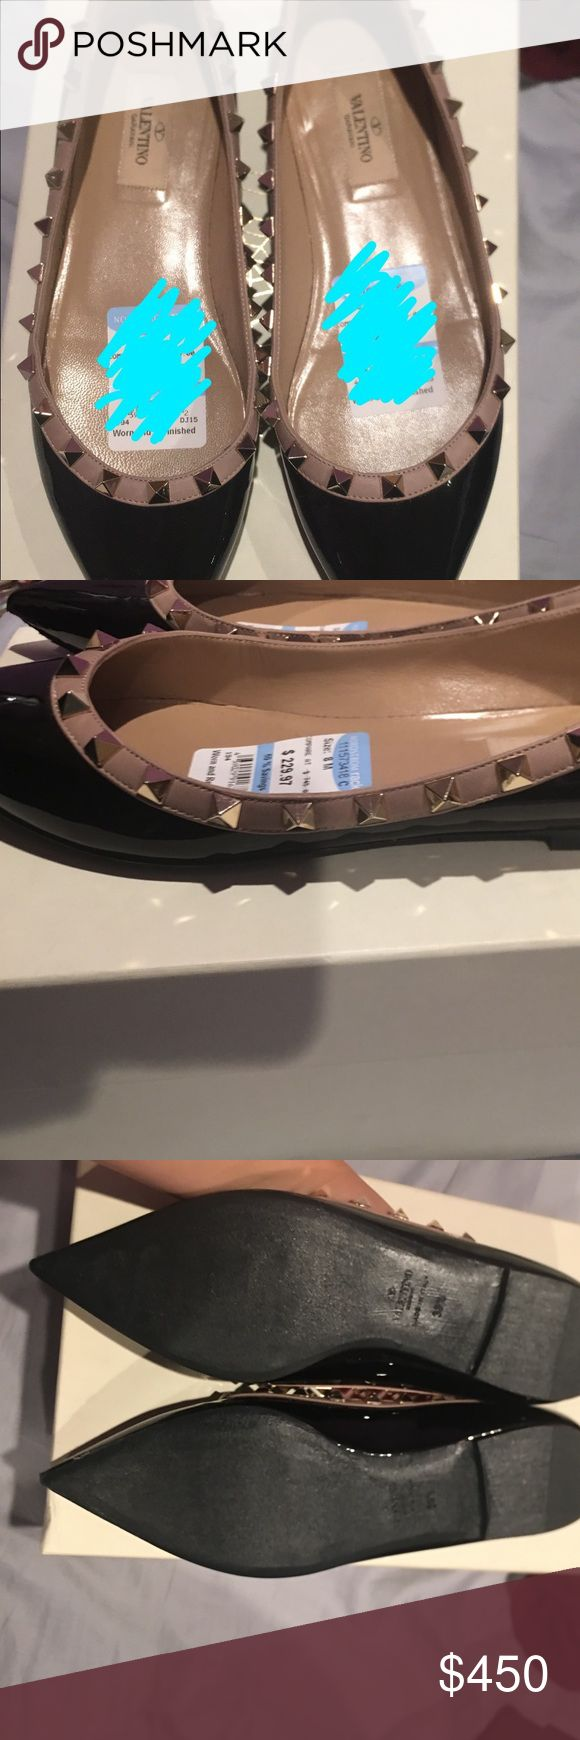 Valentino Rockstud flats Black and Tan flats no studs missing. Never worn. Price negotiable Valentino Shoes Flats & Loafers